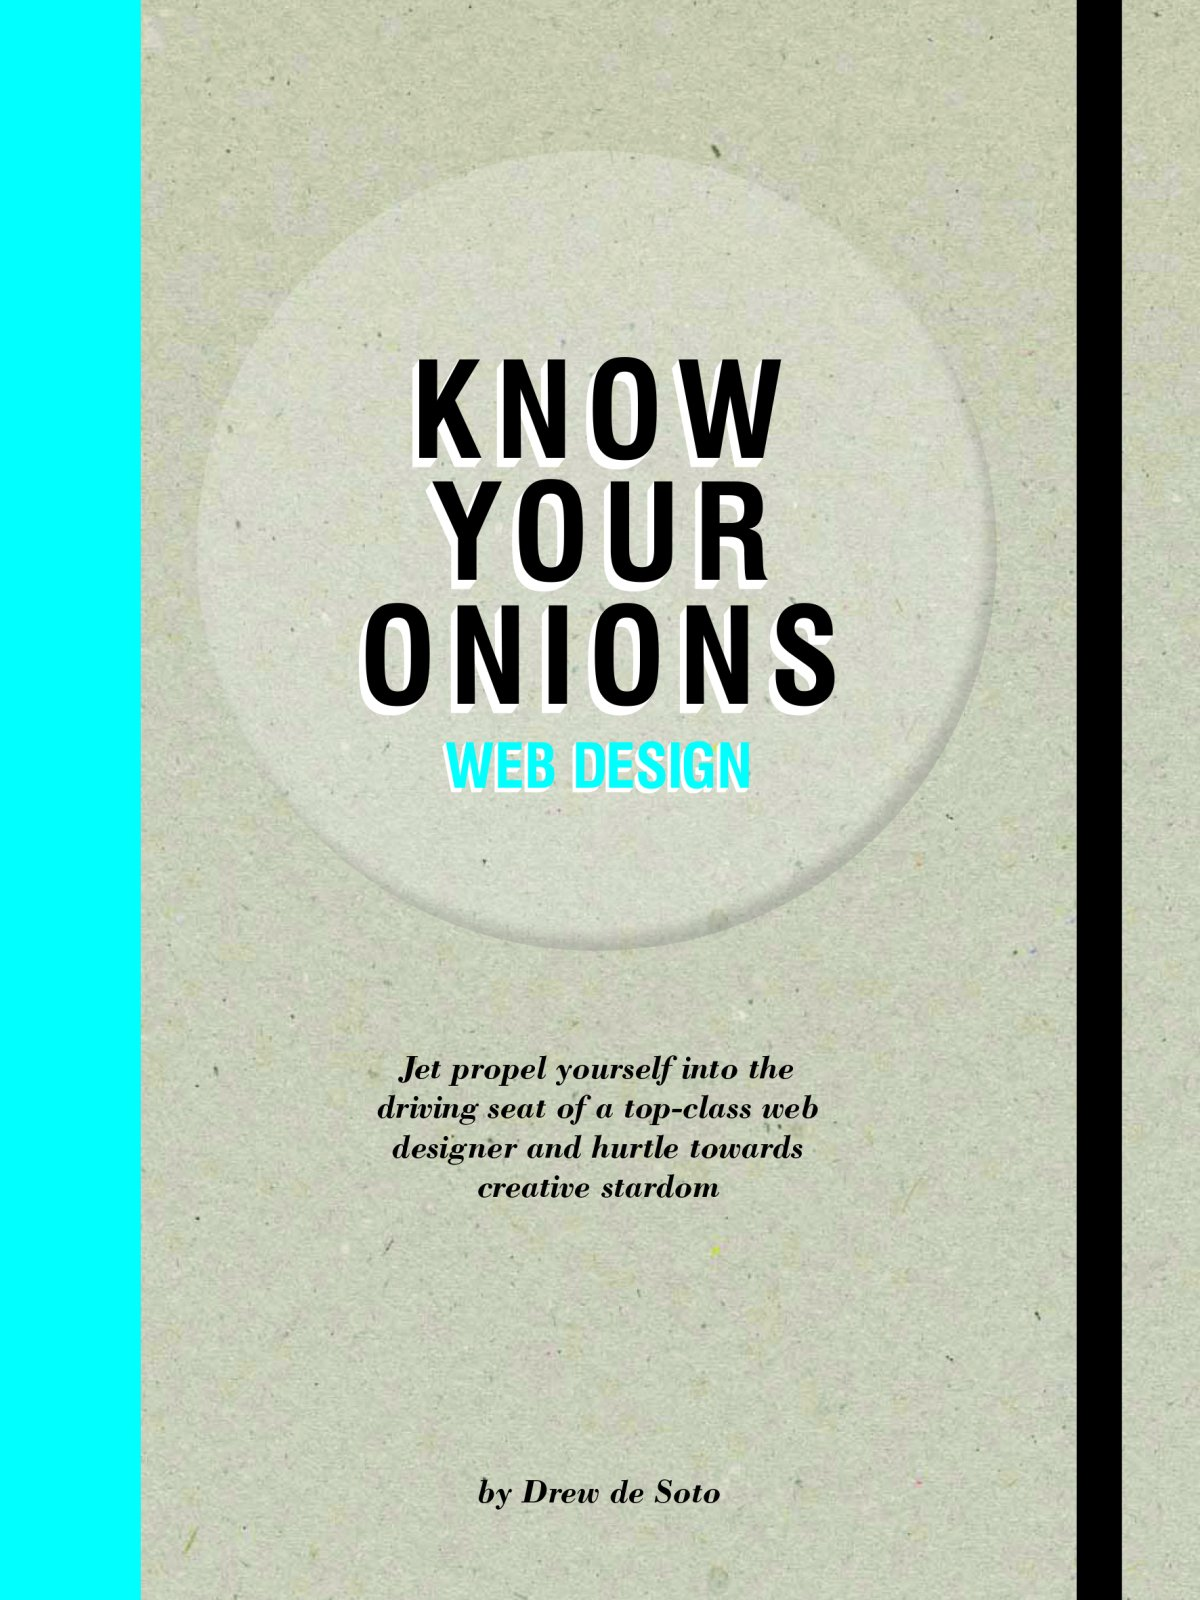 Know Your Onions: Web Design: Jet Propel Yourself into the Driving Seat of a Top-class Web Designer and Hurtle Towards Creative Stardom